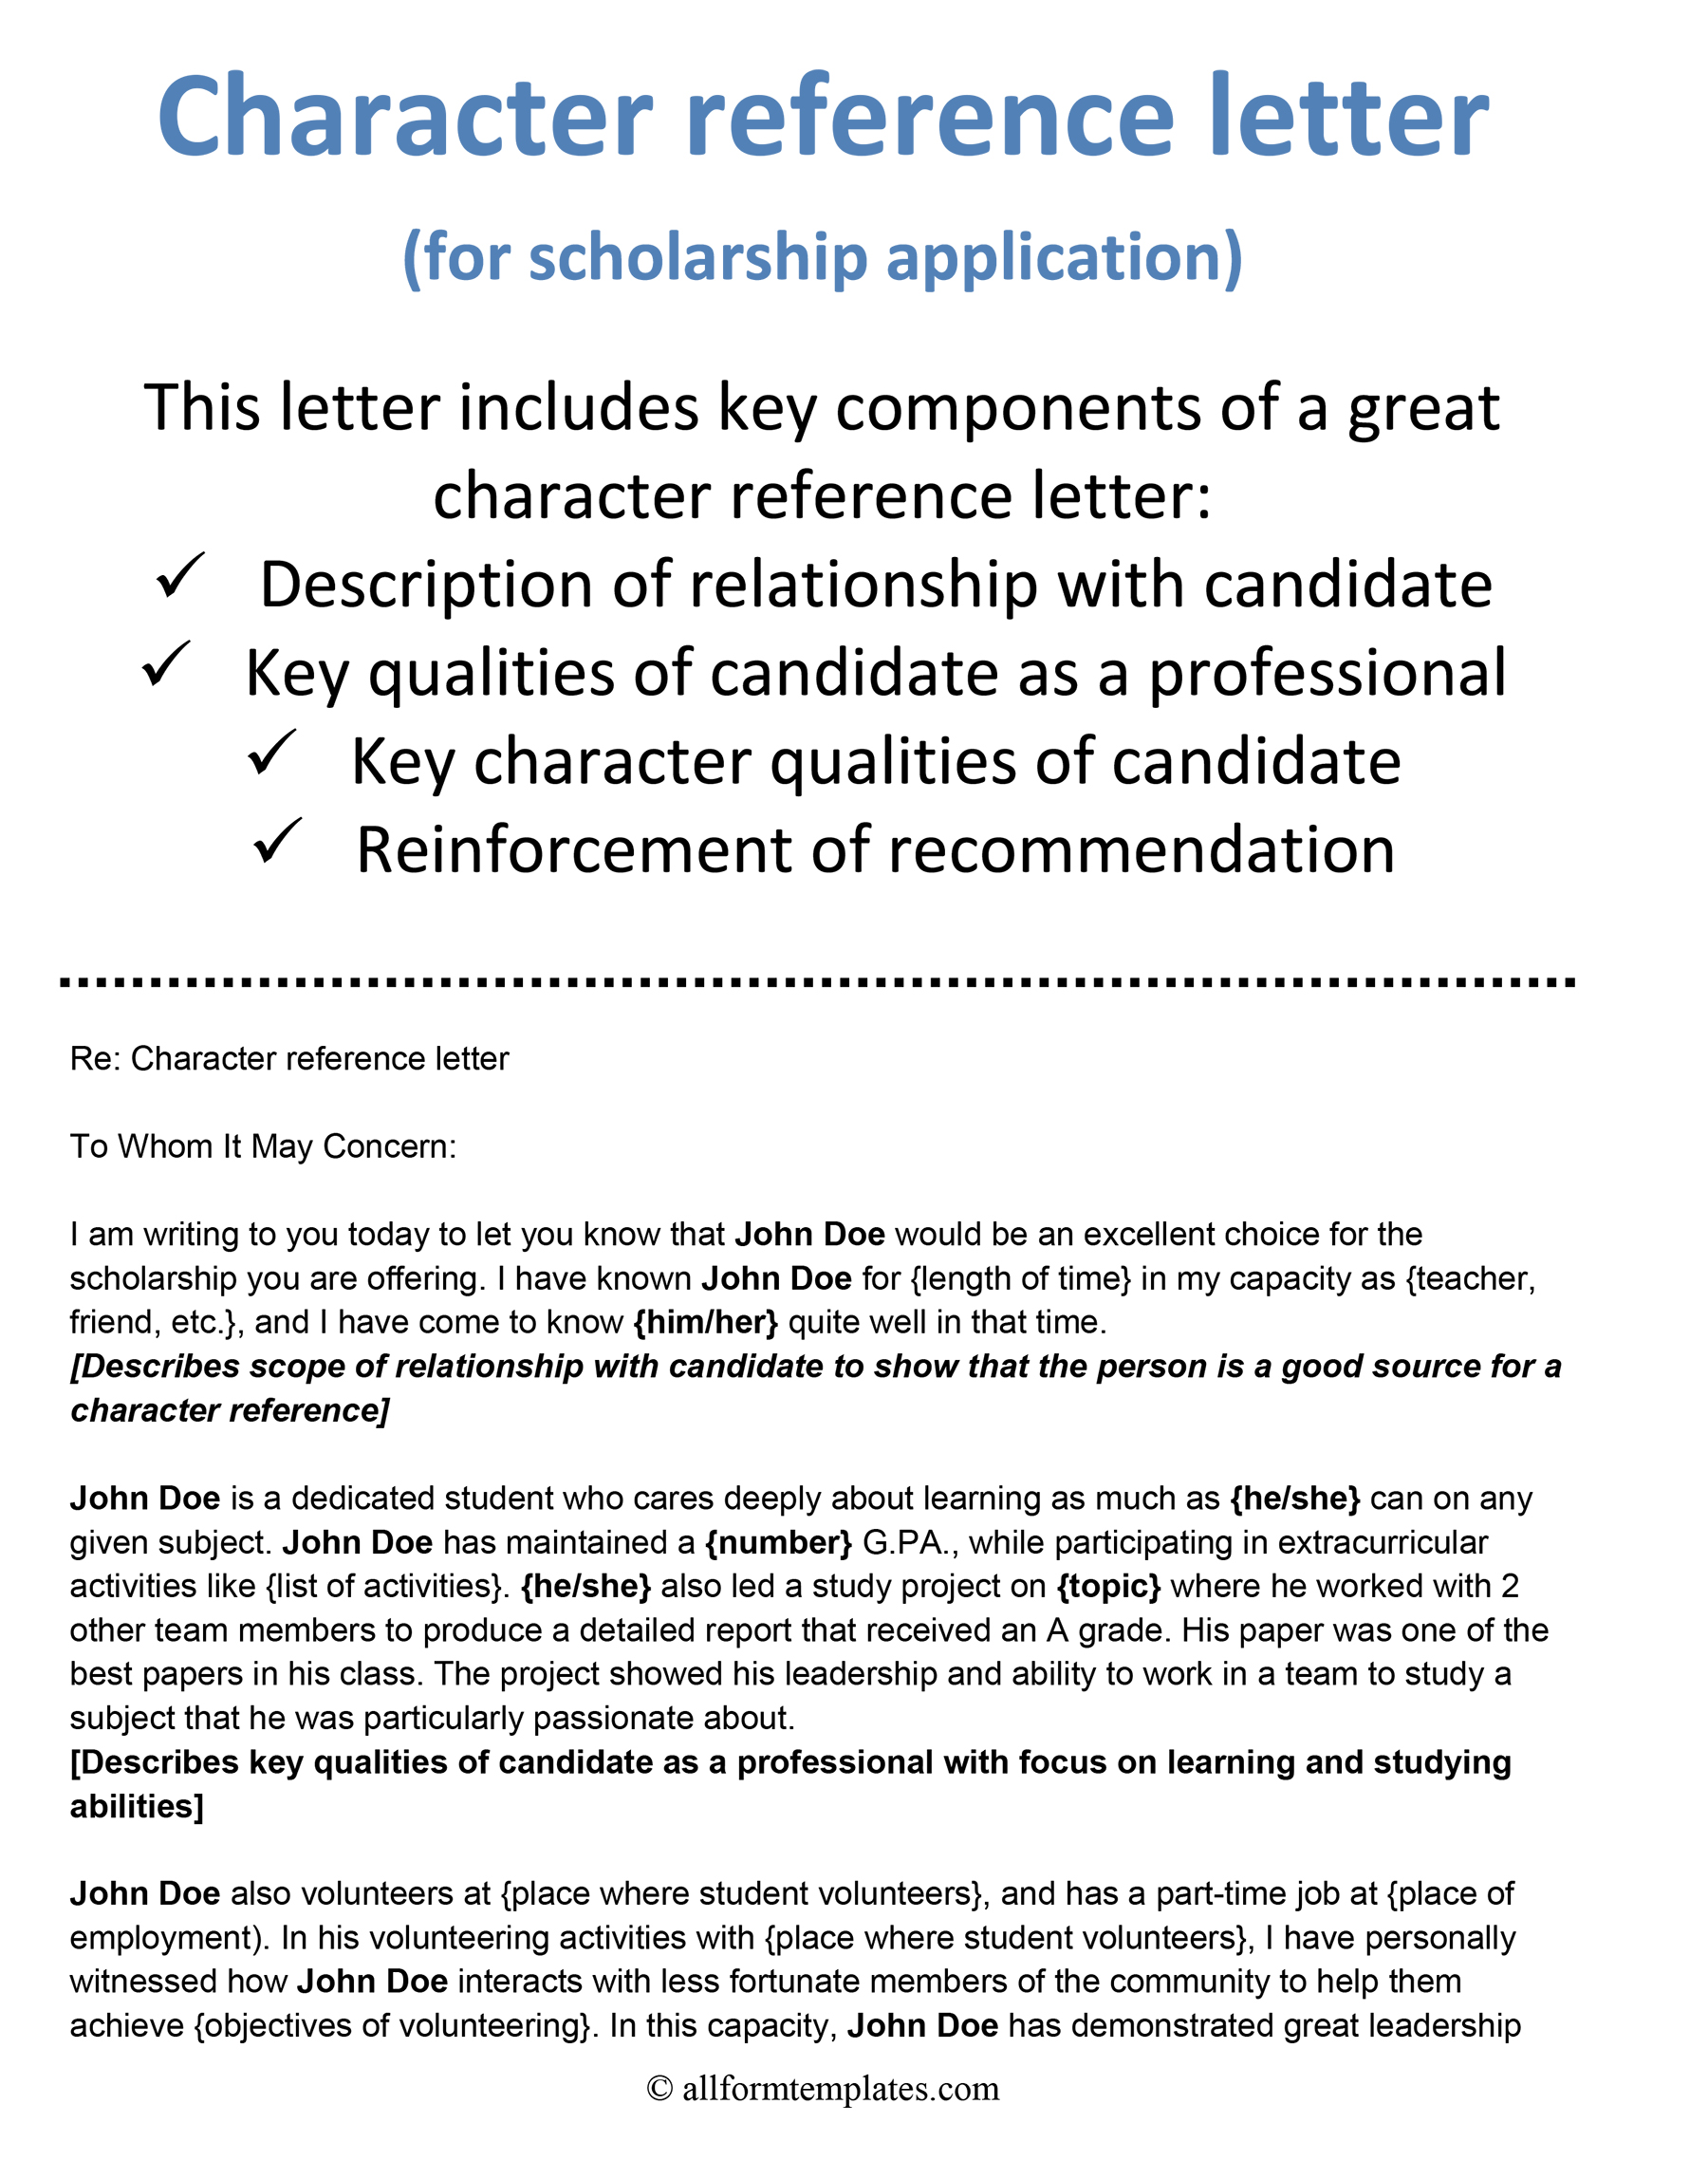 Professional-character-reference-letter-03-HD